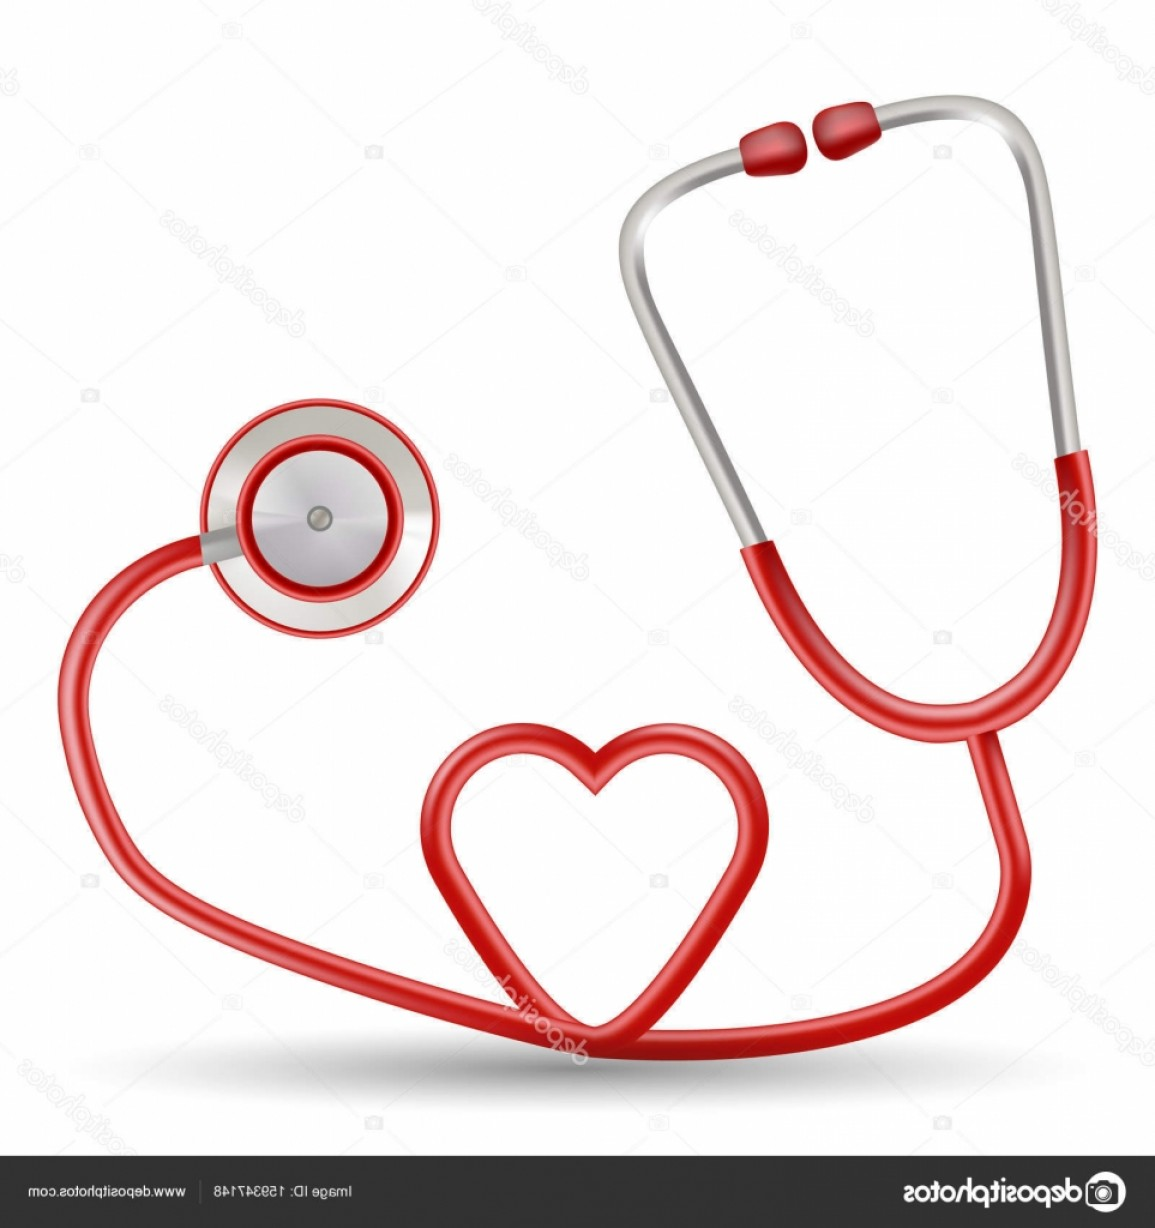 Heart Stethoscope With EKG Lines Vector: Stock Illustration Vector Red Stethoscope In Shape